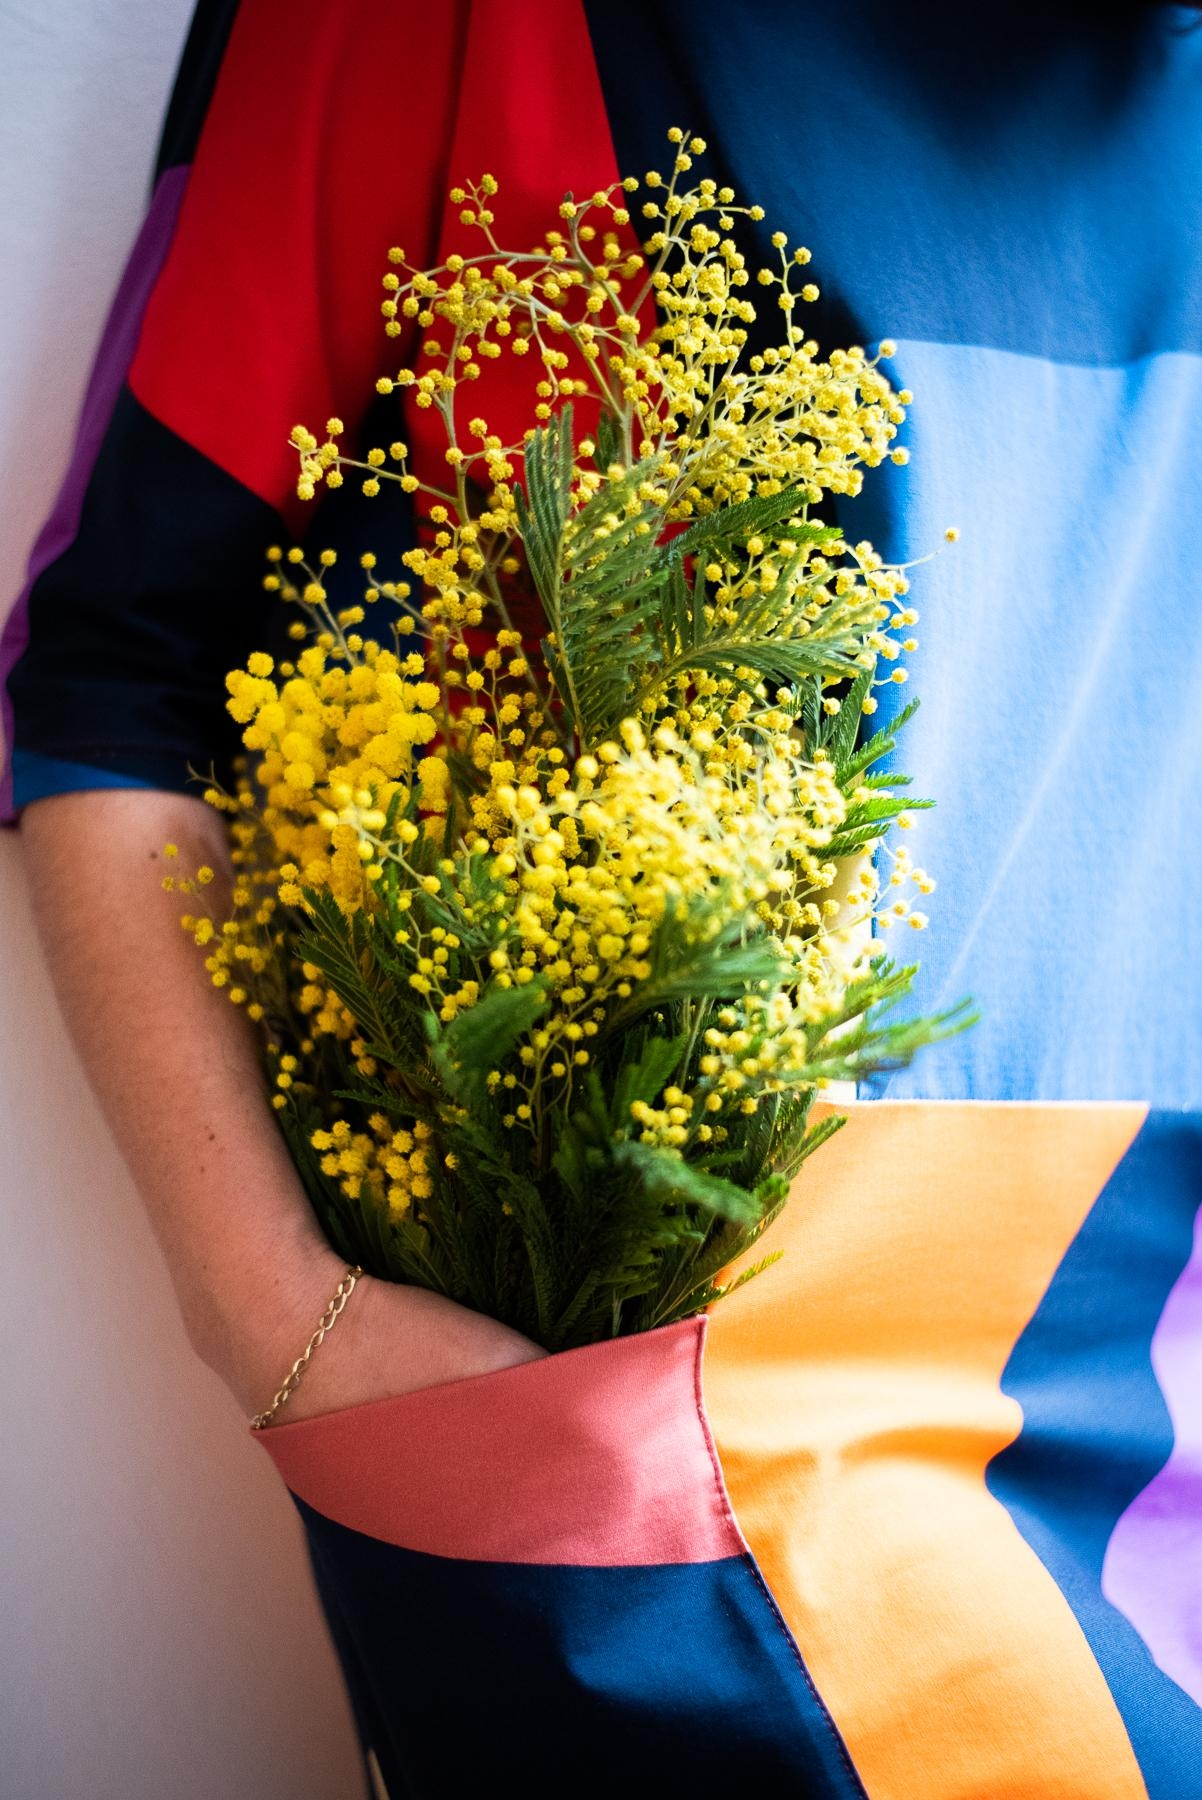 Happy Friday! #mimosen #fridayflowers #freshflowers #fashioncrush #springoutfit #fashioninspo #ootd